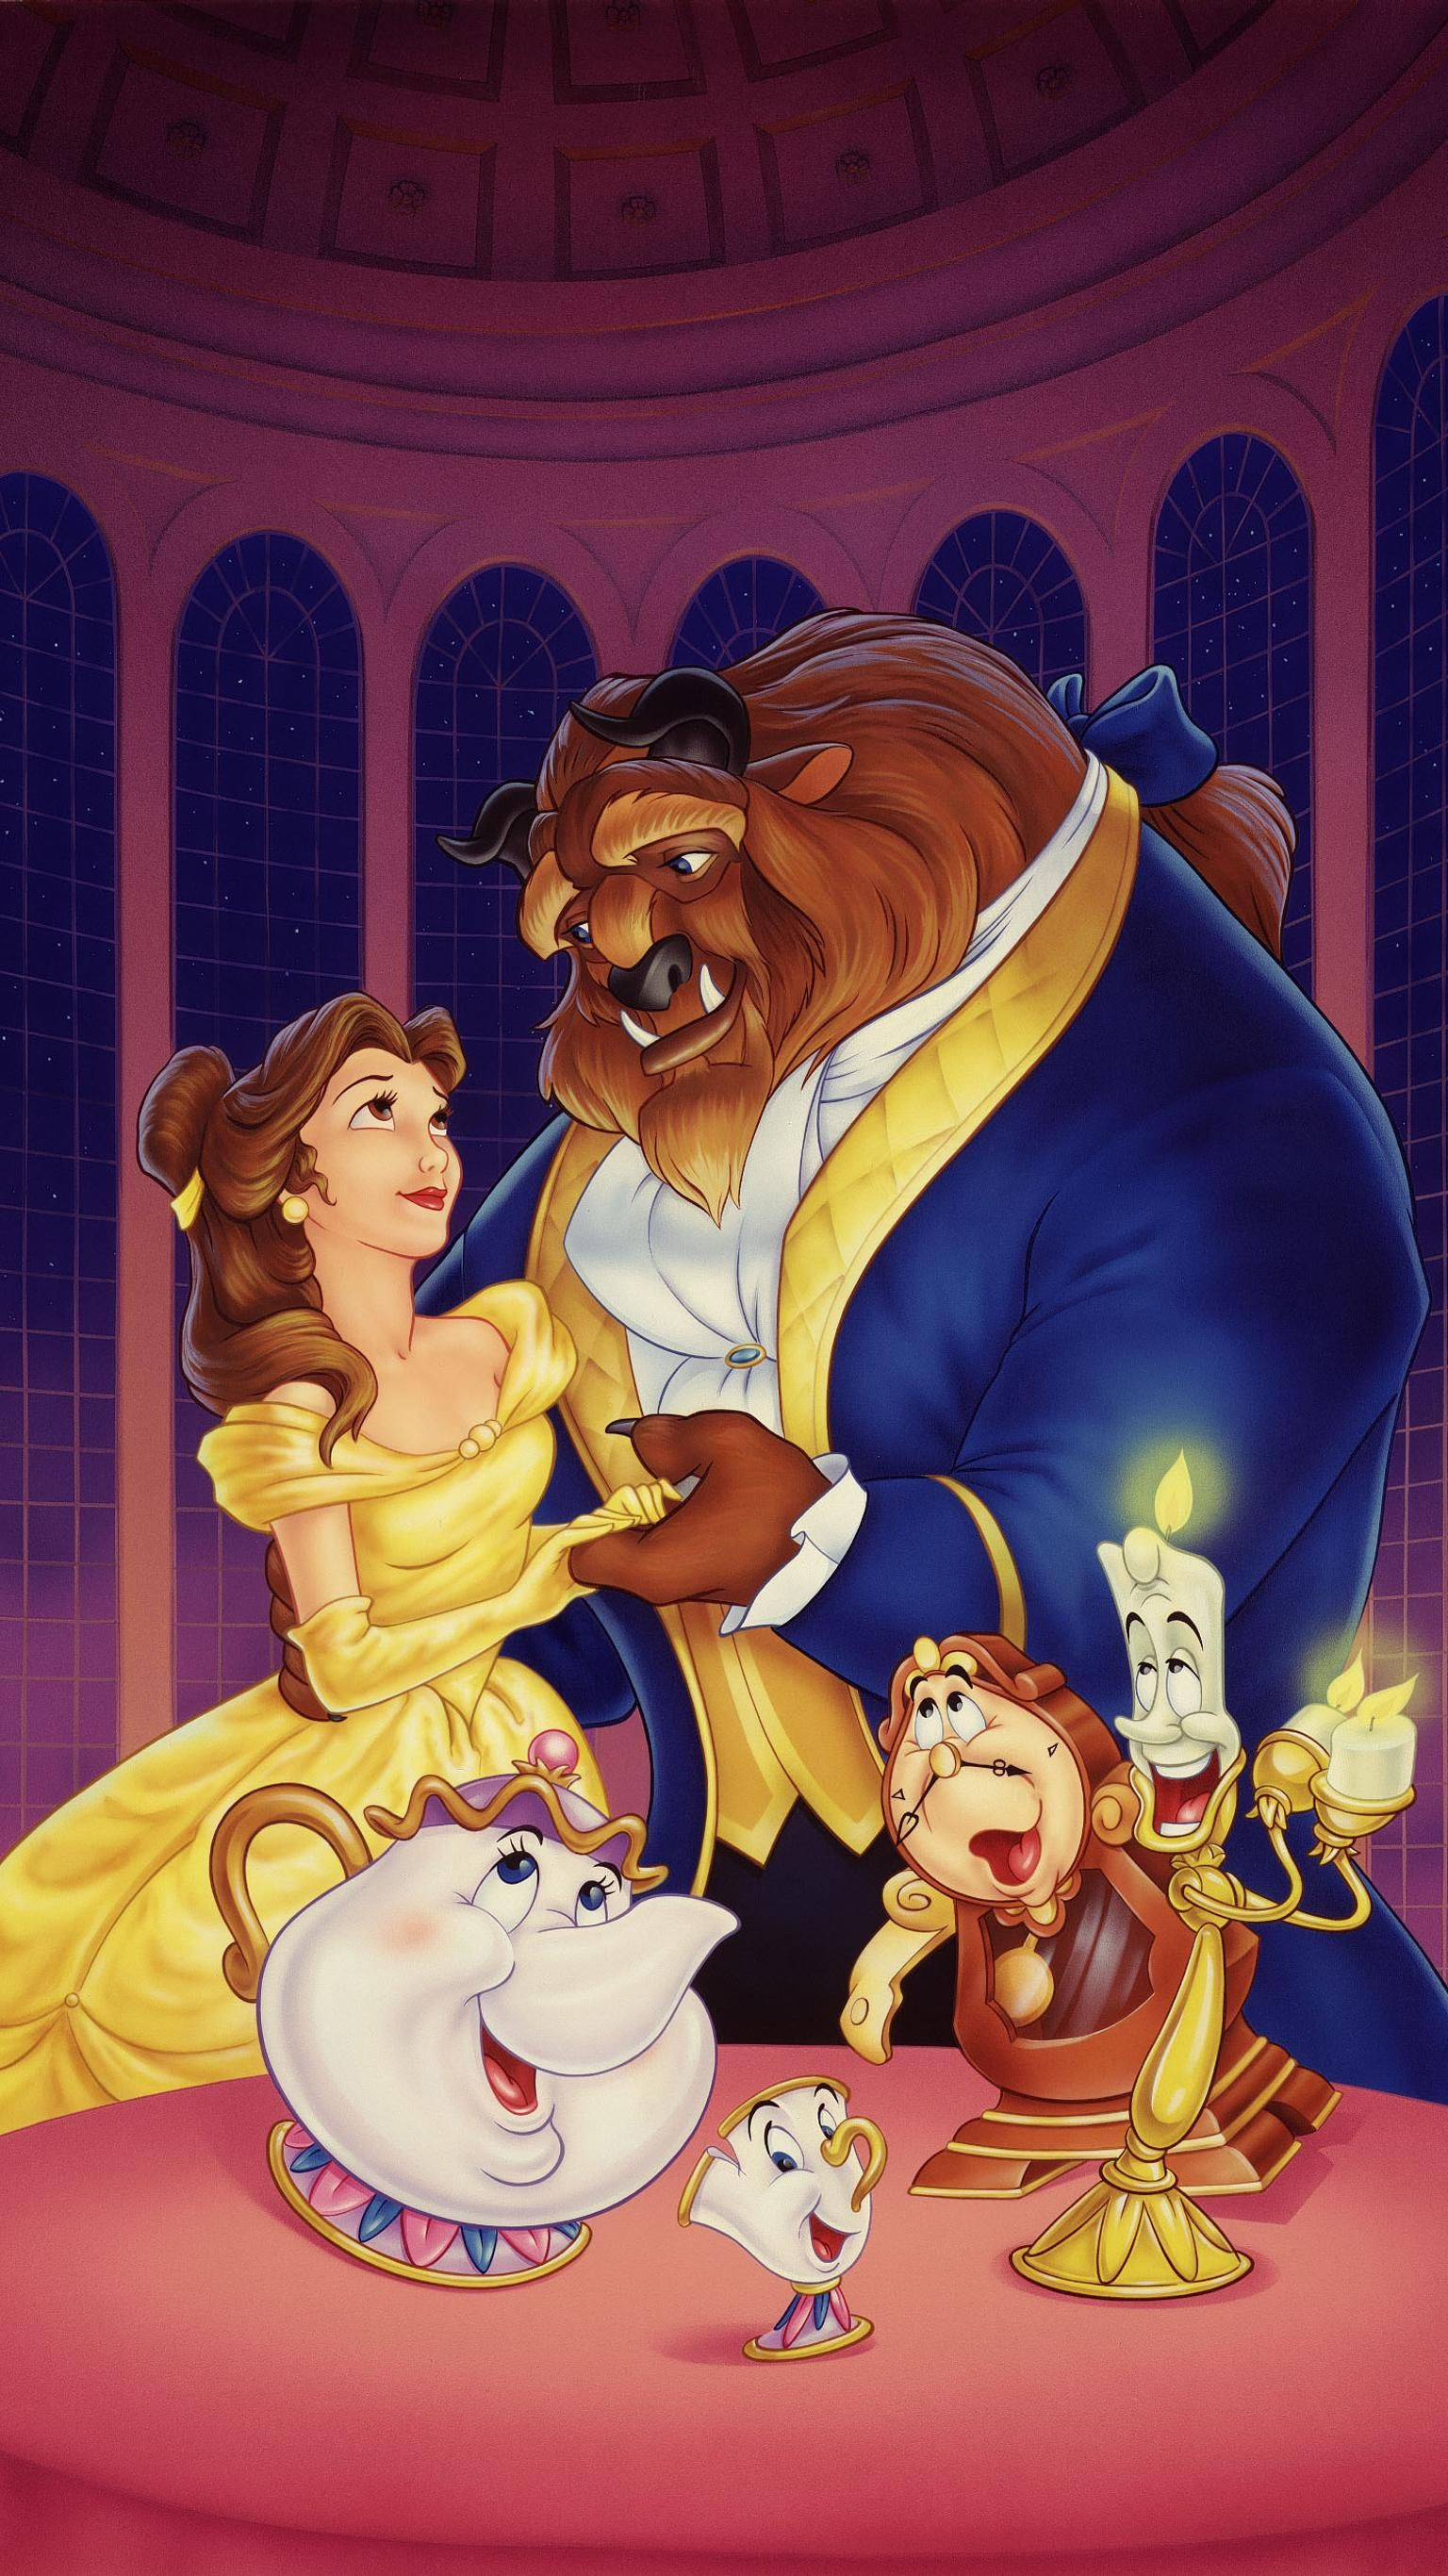 Beauty And The Beast 1991 Phone Wallpaper In 2020 Beauty The